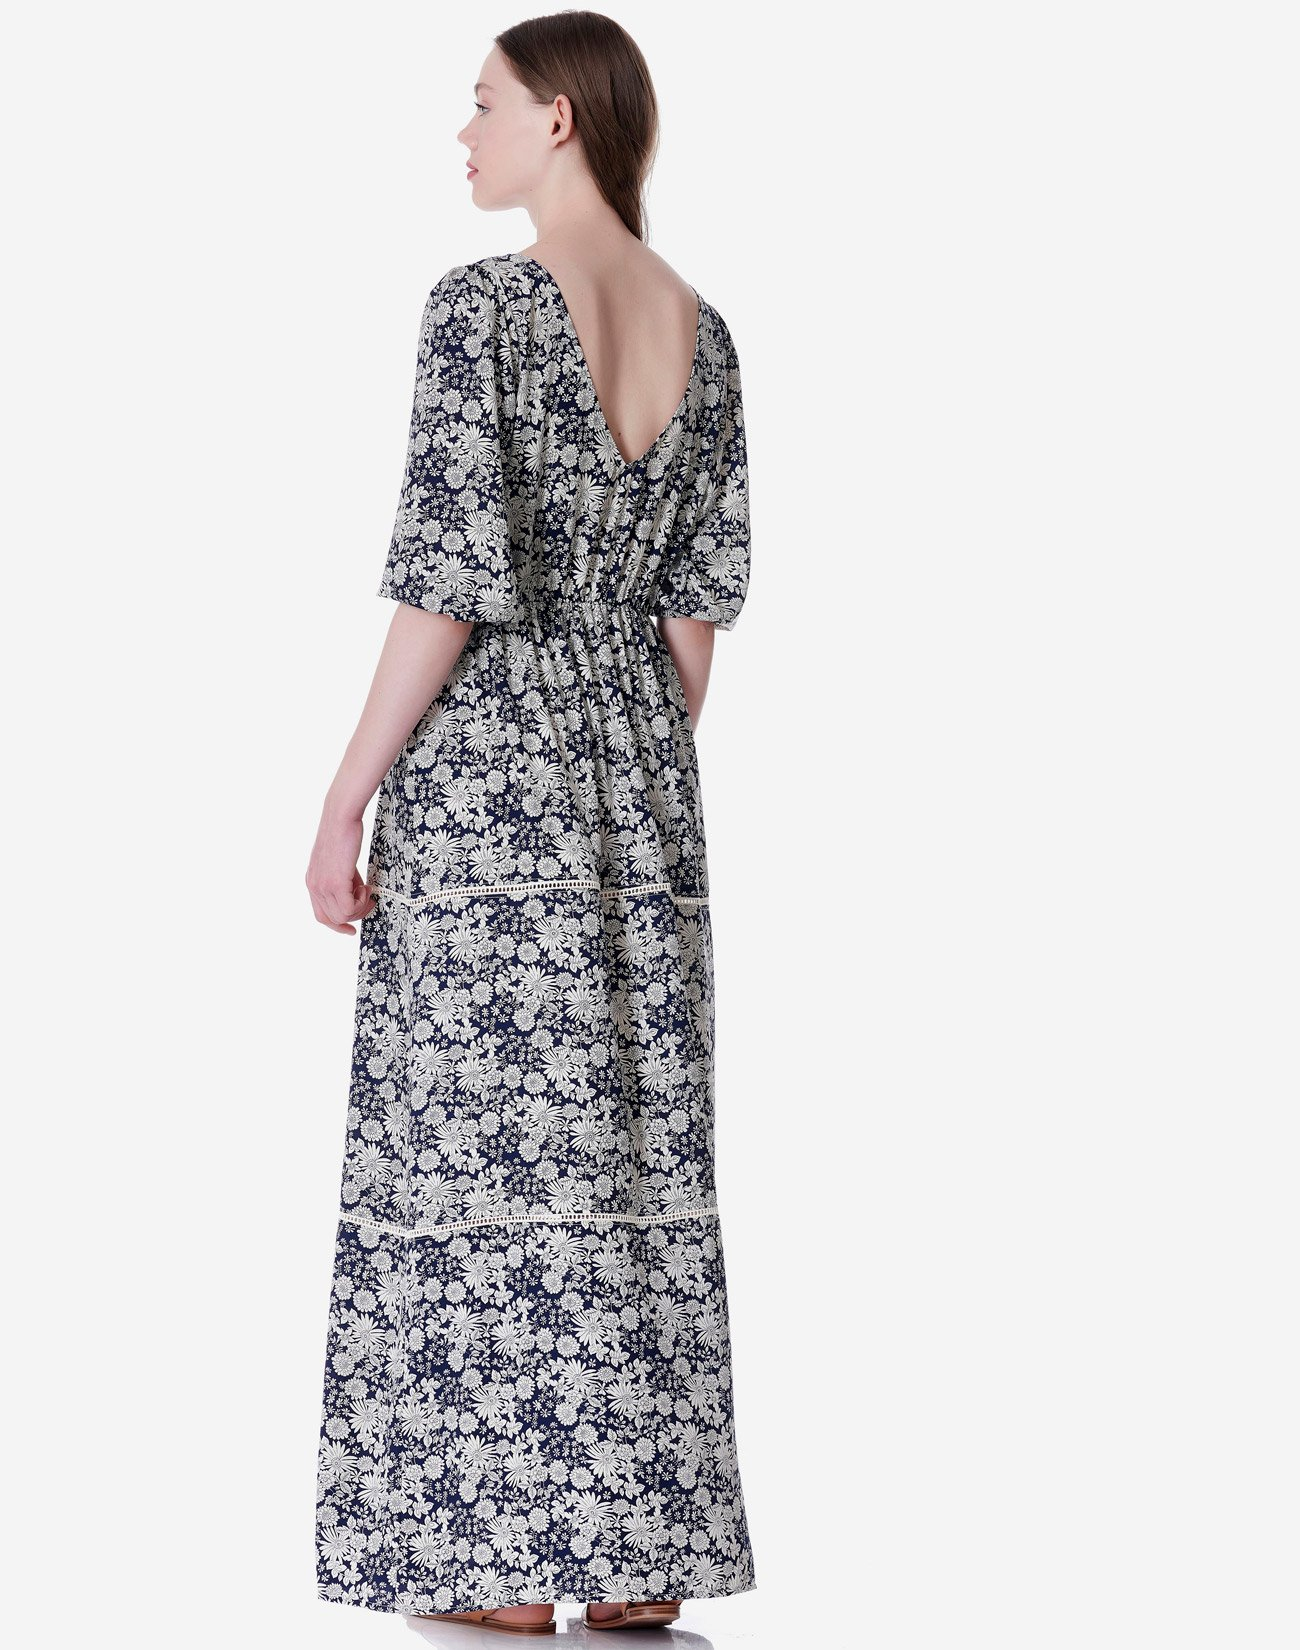 Printed maxi dress with buttons